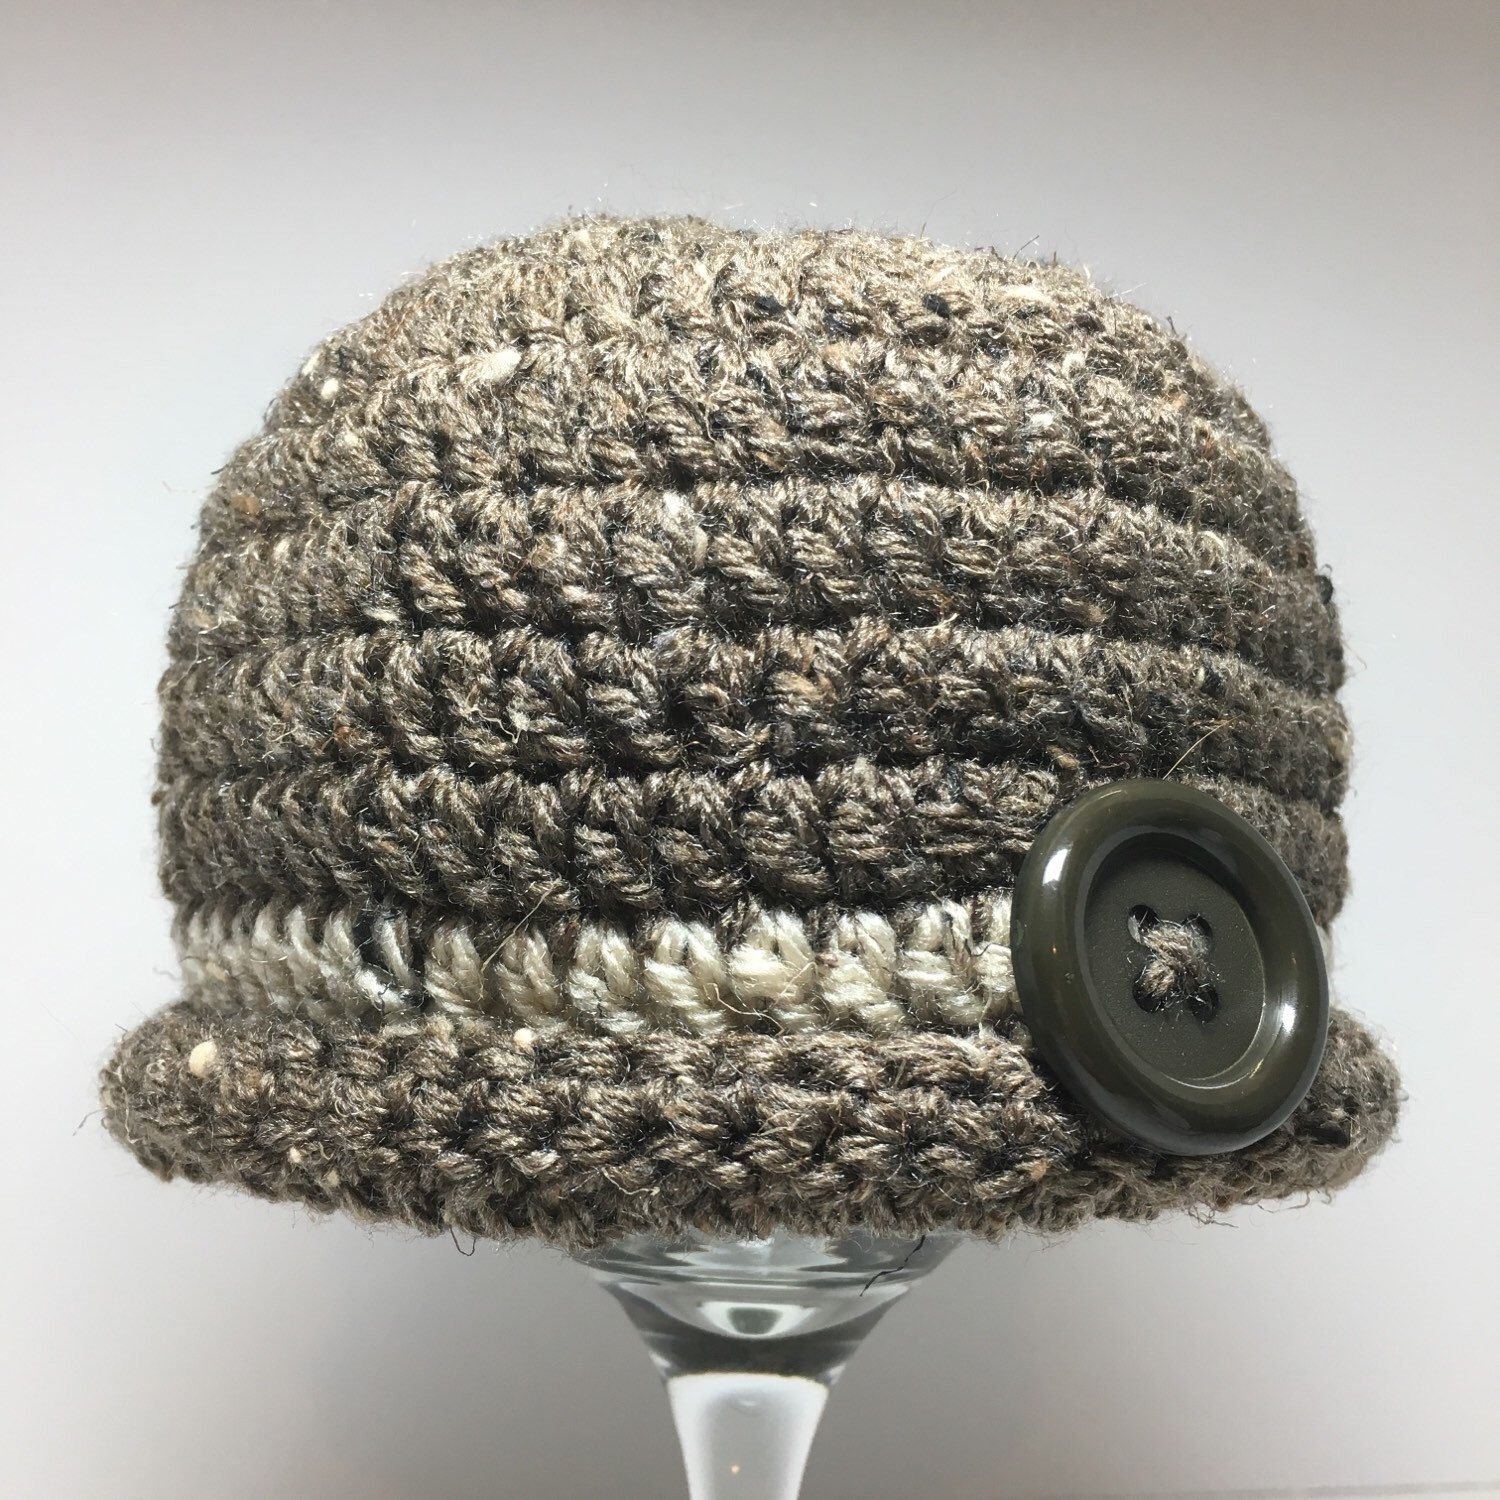 Crochet baby hat, crochet hat with button, baby beanie hat by anniescraftcloset on Etsy https://www.etsy.com/listing/271106807/crochet-baby-hat-crochet-hat-with-button